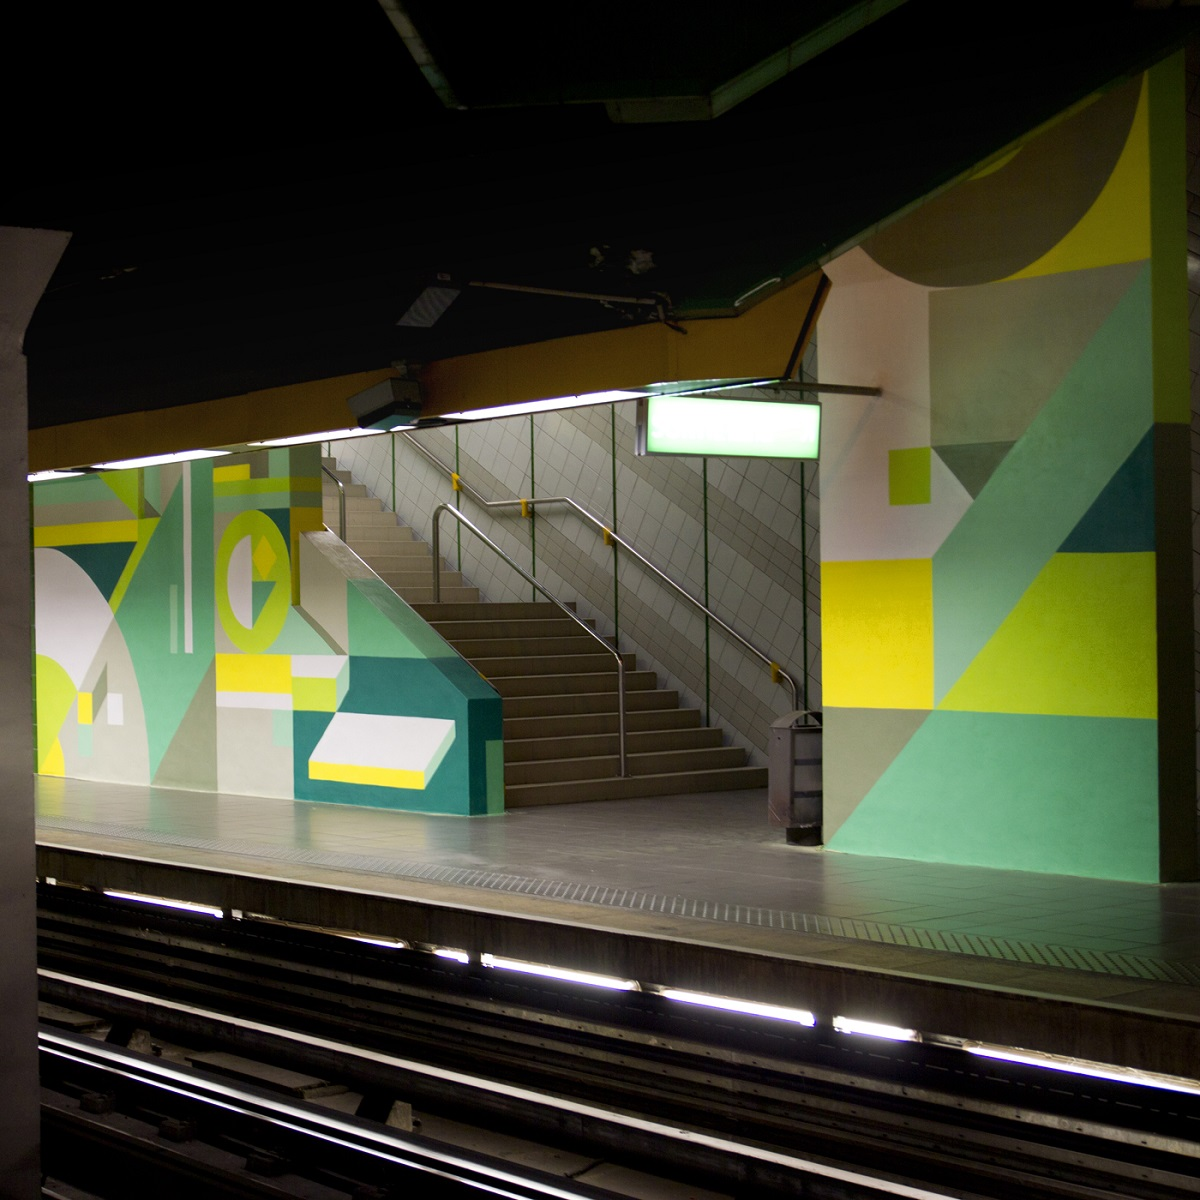 nelio-new-mural-at-station-mermoz-in-lyon-09